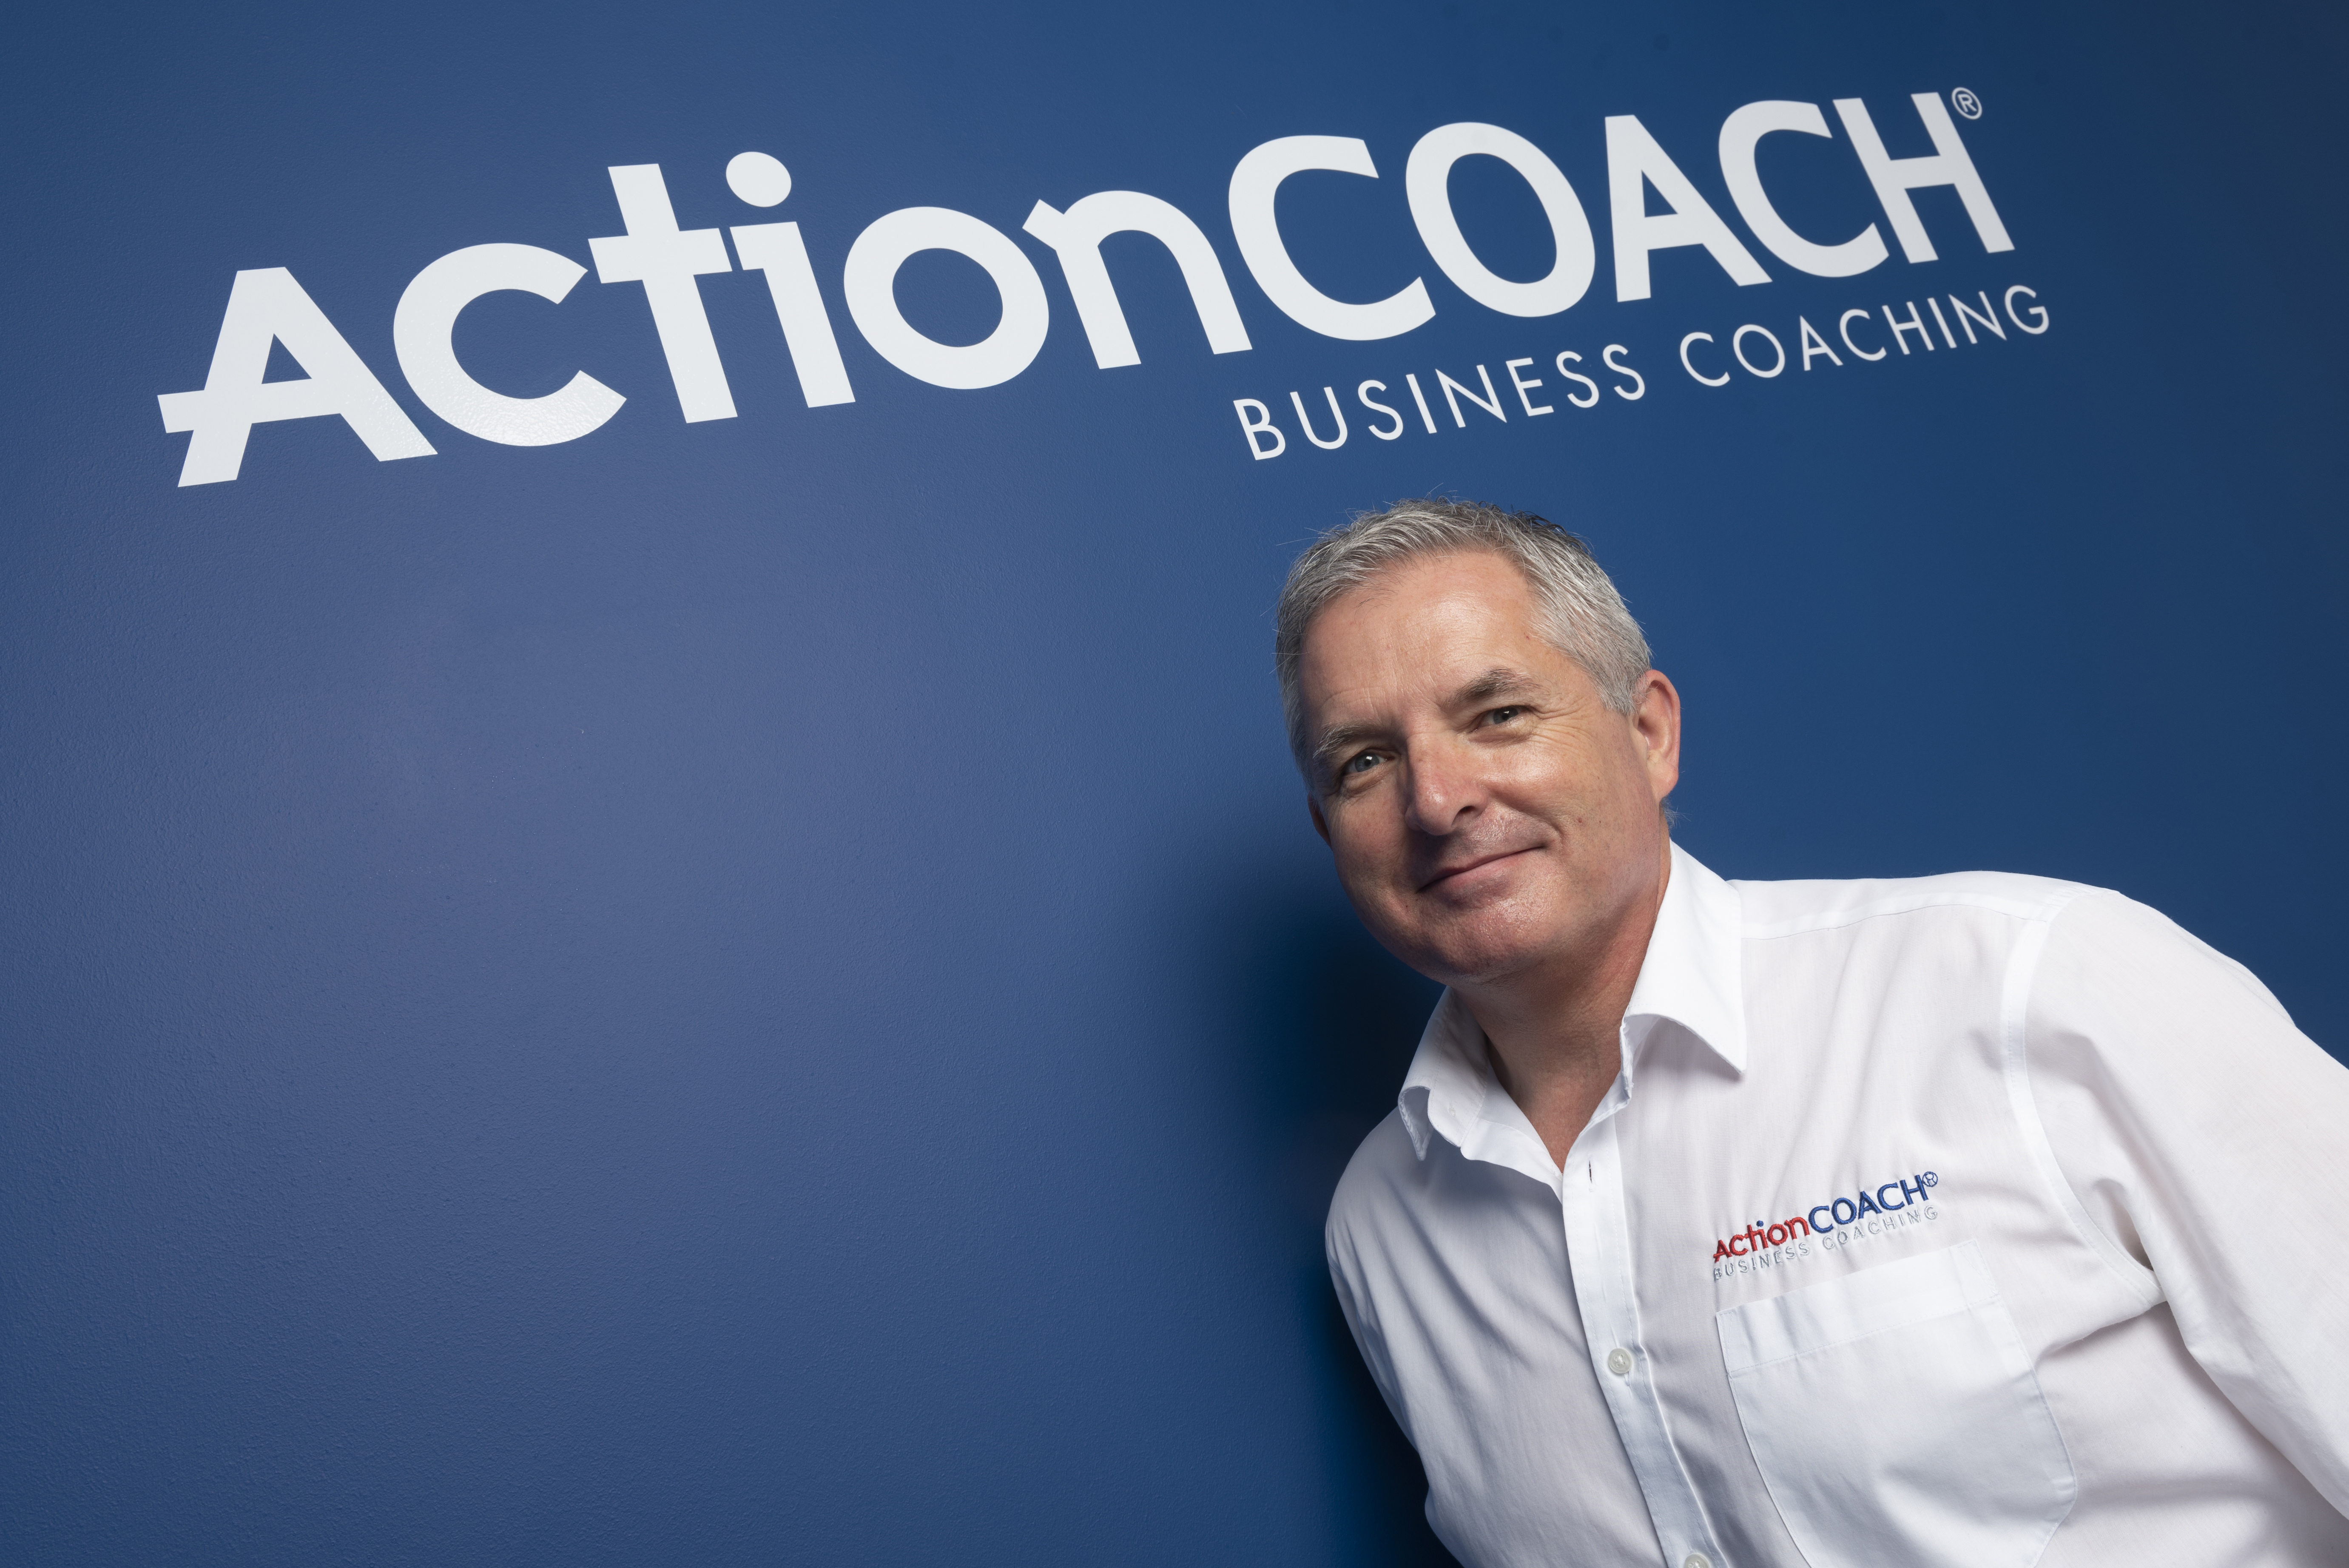 Business coach reveals 10 resolutions for a more profitable 2021